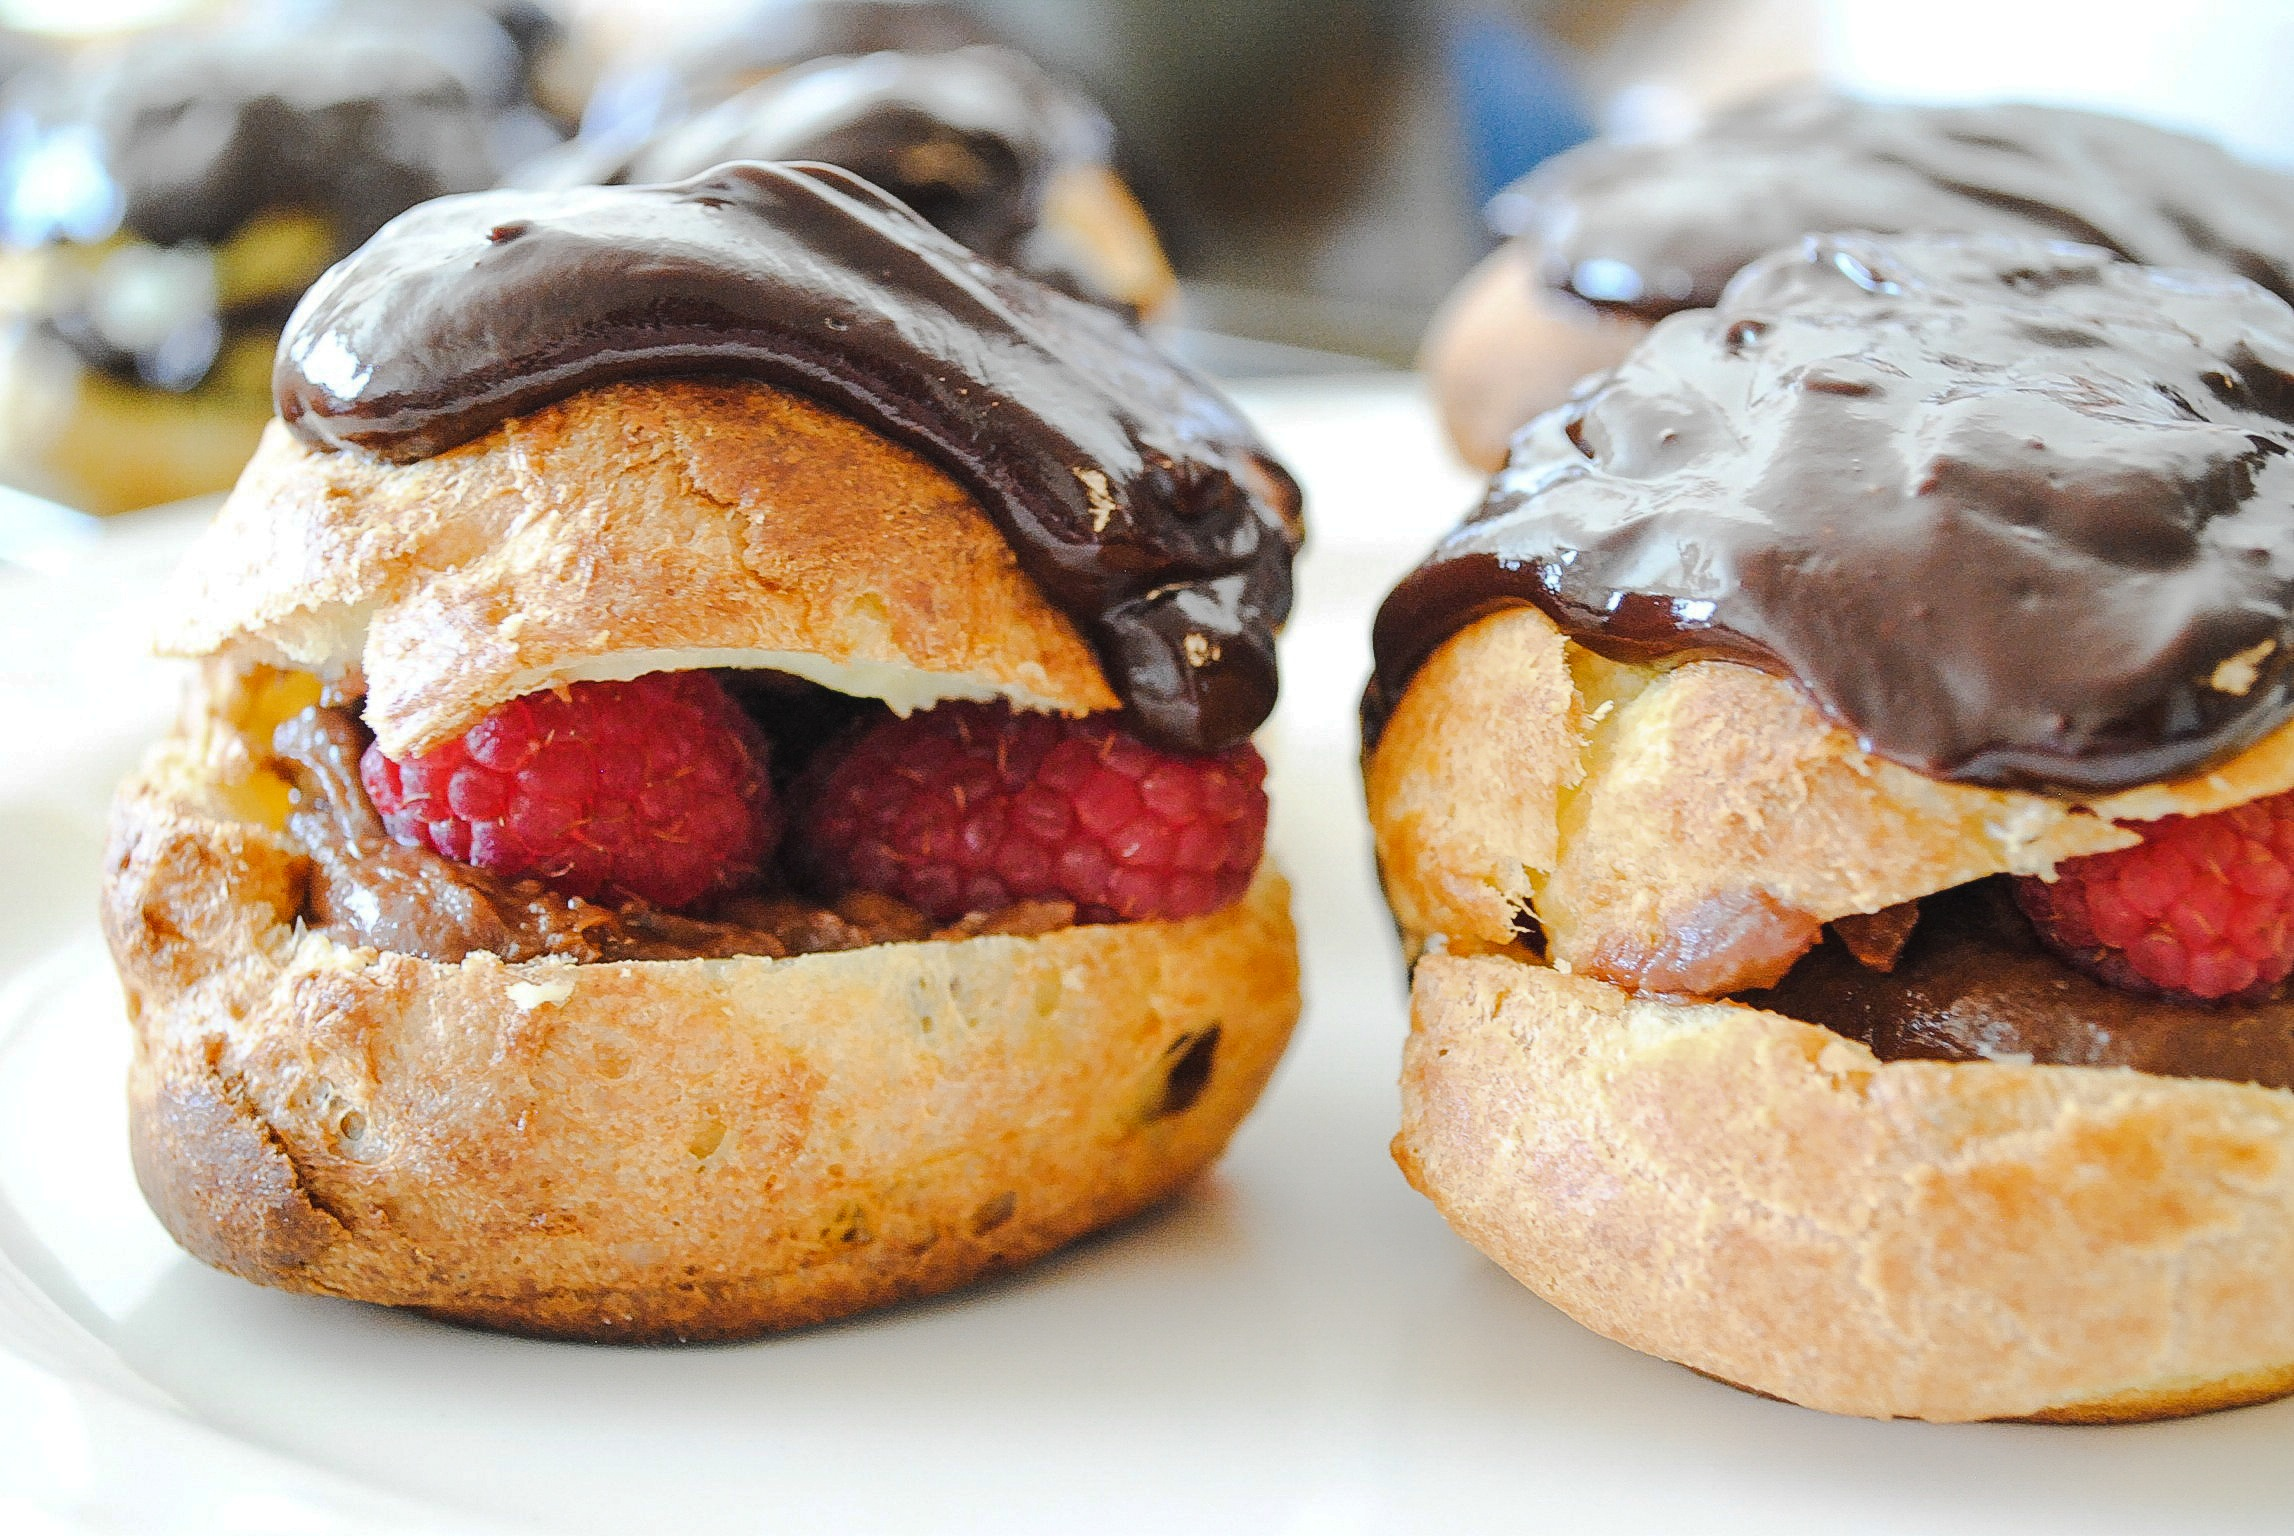 Raspberry Eclairs with Chocolate Pastry Cream | Blessings + Good Food